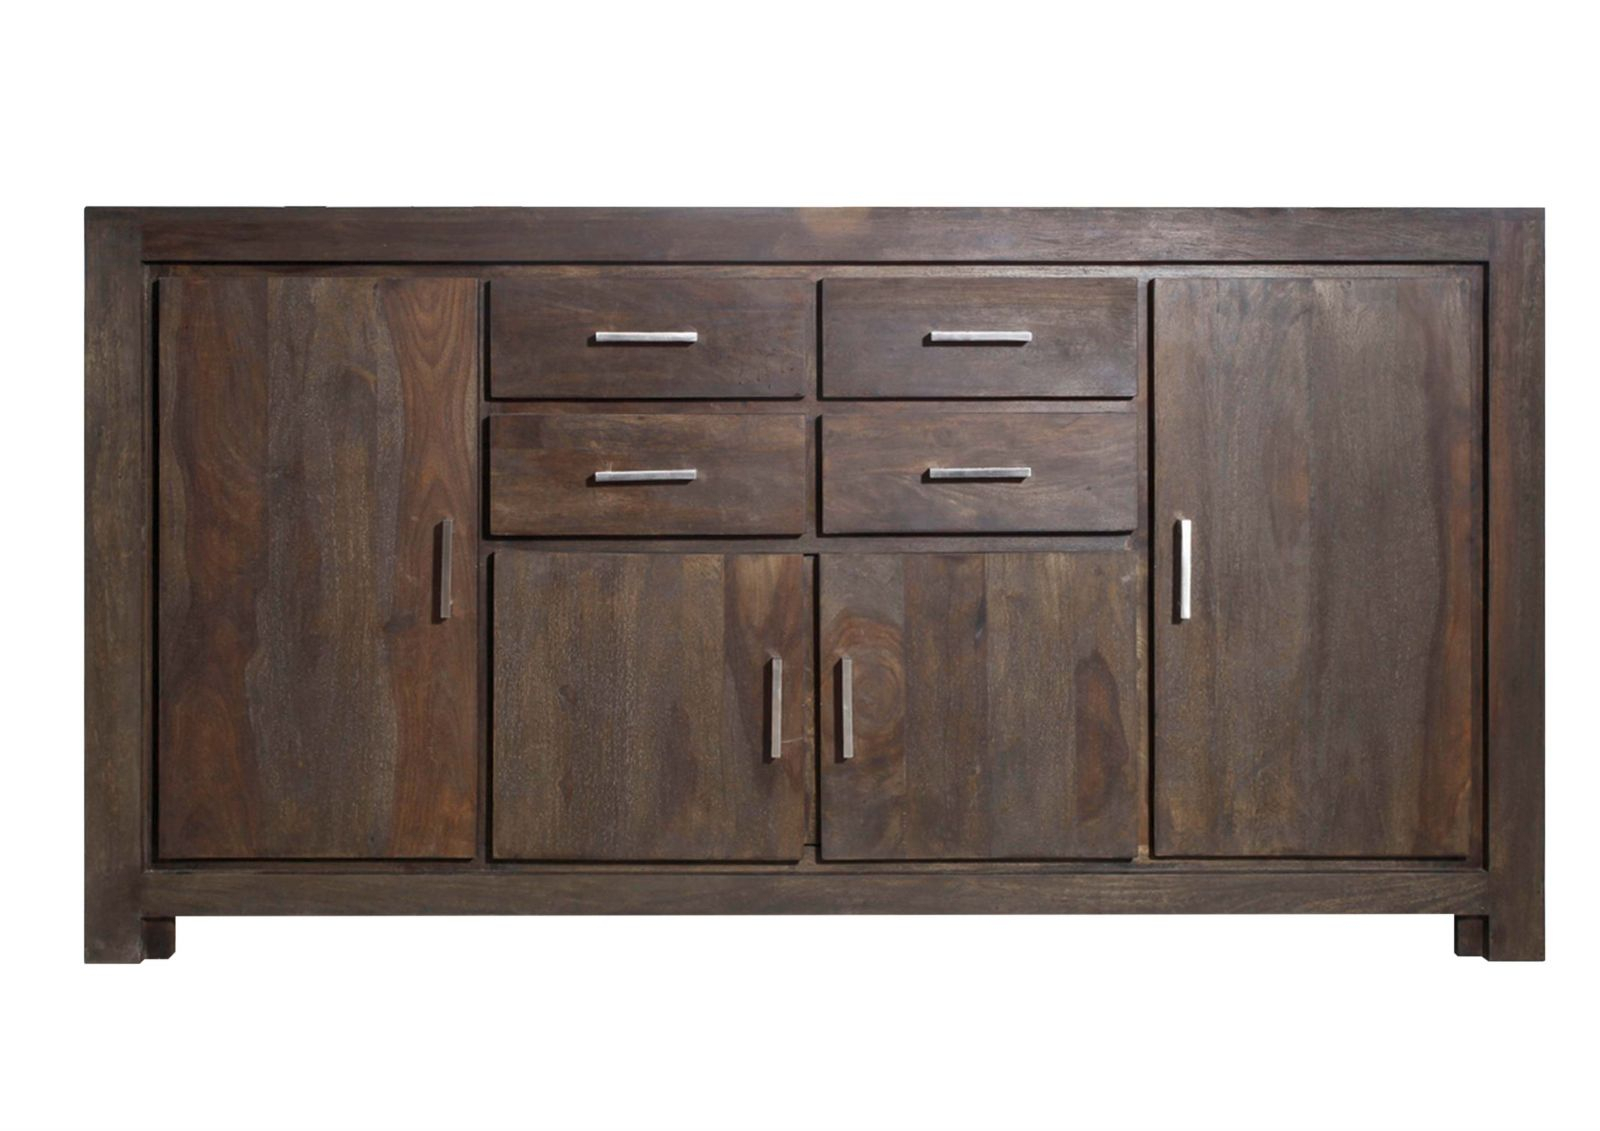 Sideboard Metro Polis Sheesham/palisander 178X45X95 Cm Modern Intended For Newest Metro Sideboards (#11 of 20)